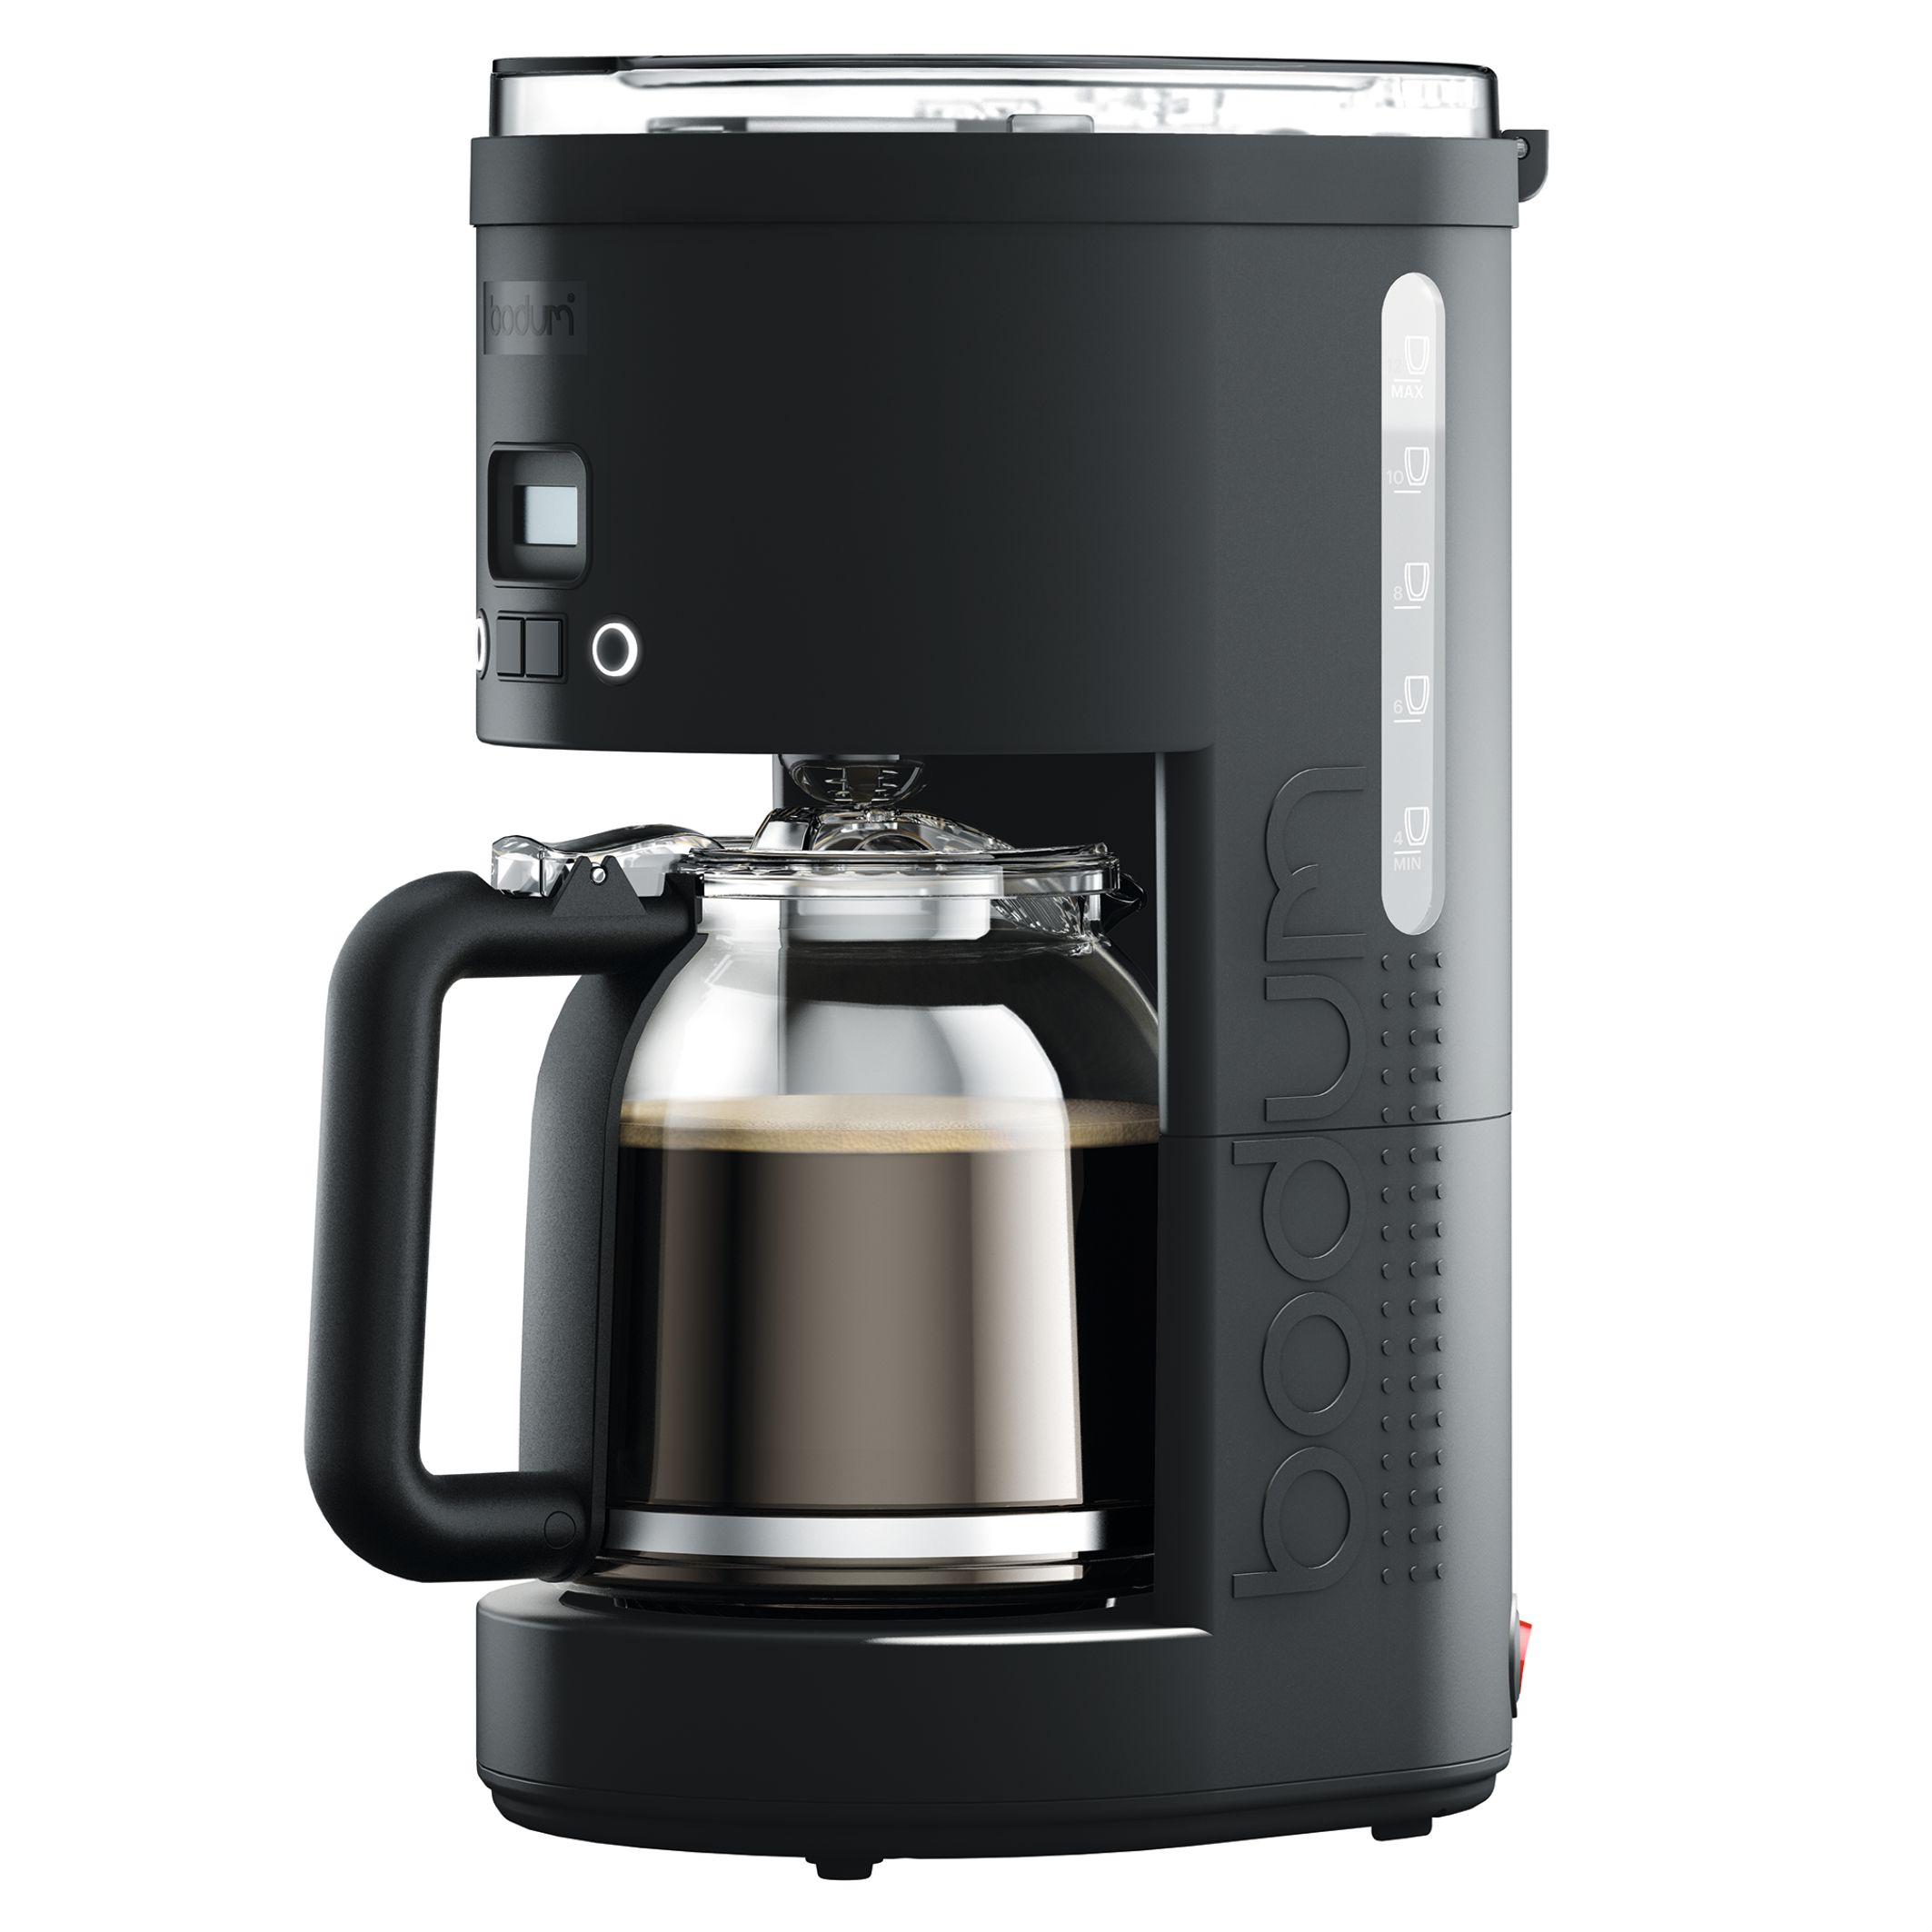 Bodum BISTRO Programmable Coffee Maker, 1.5 L, 51 Ounce (12 cup), Black